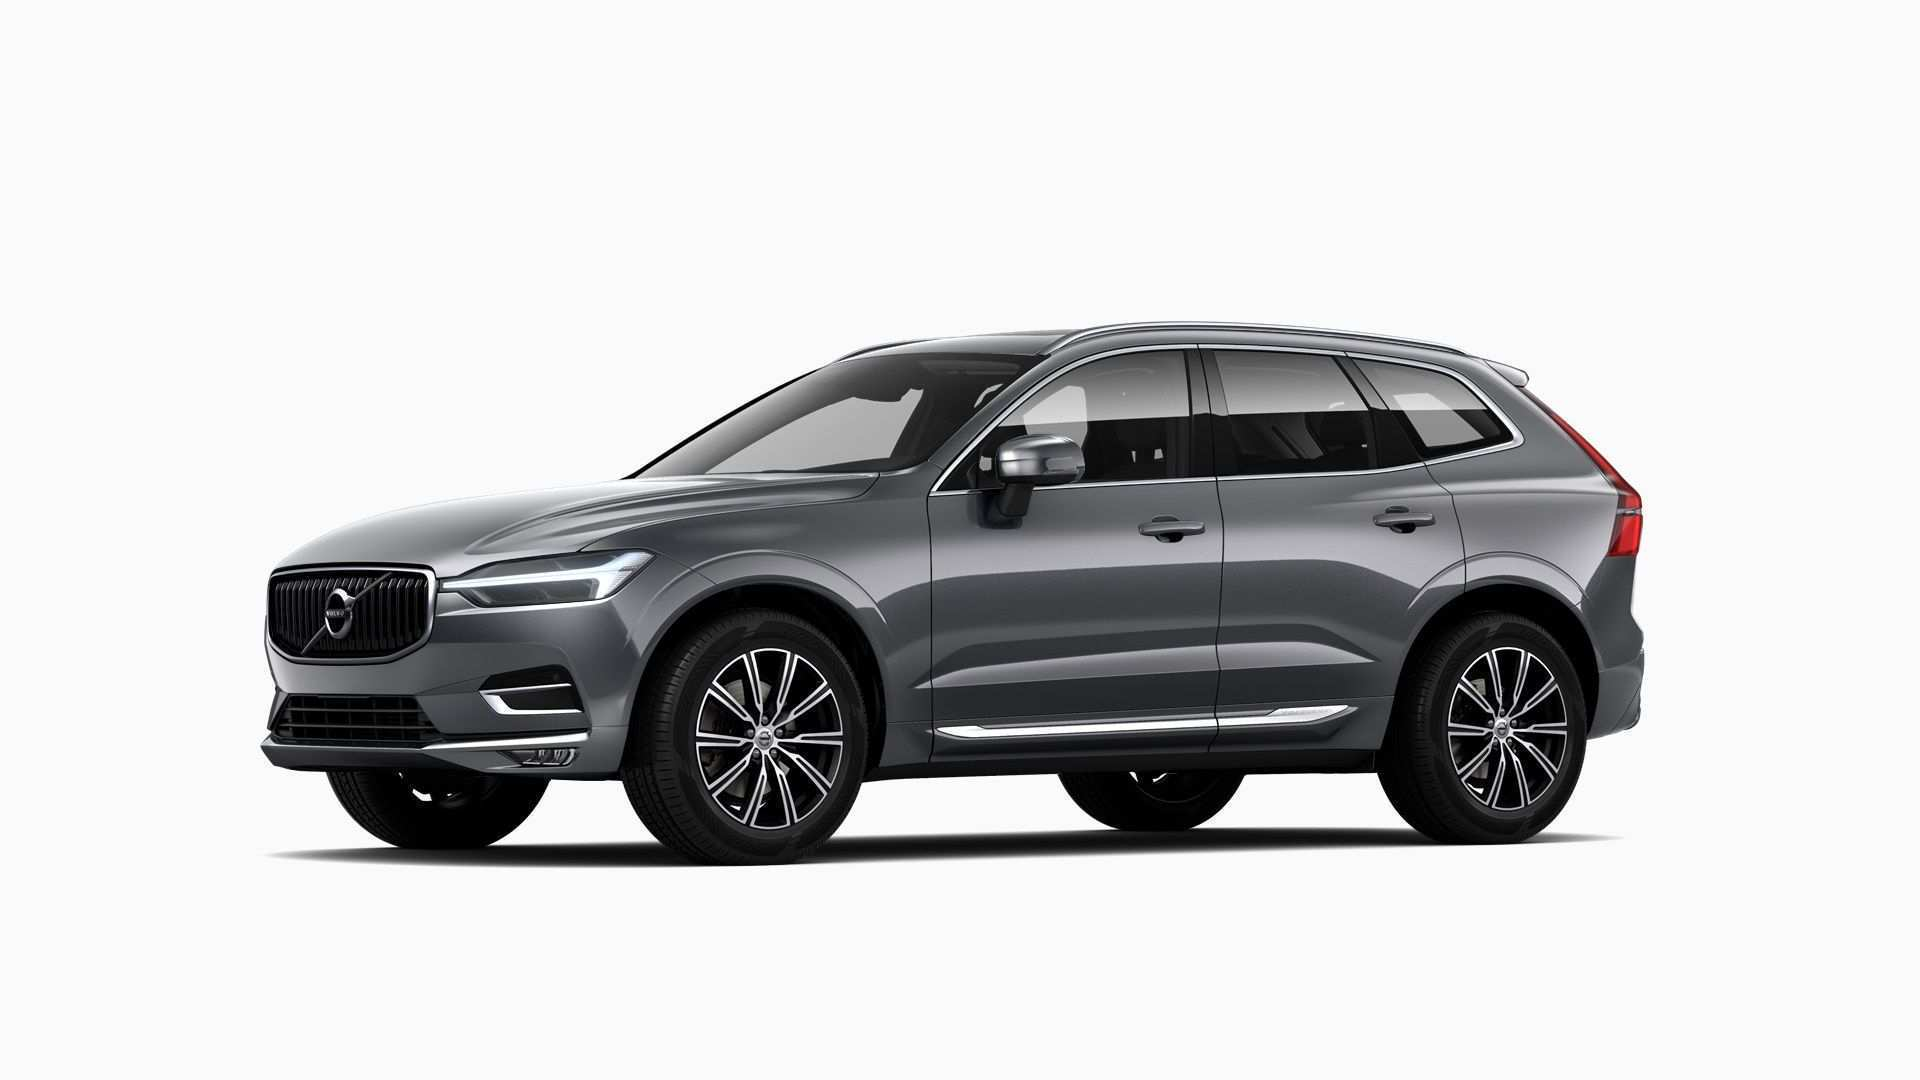 62 All New Volvo Xc60 2019 Osmium Grey Price